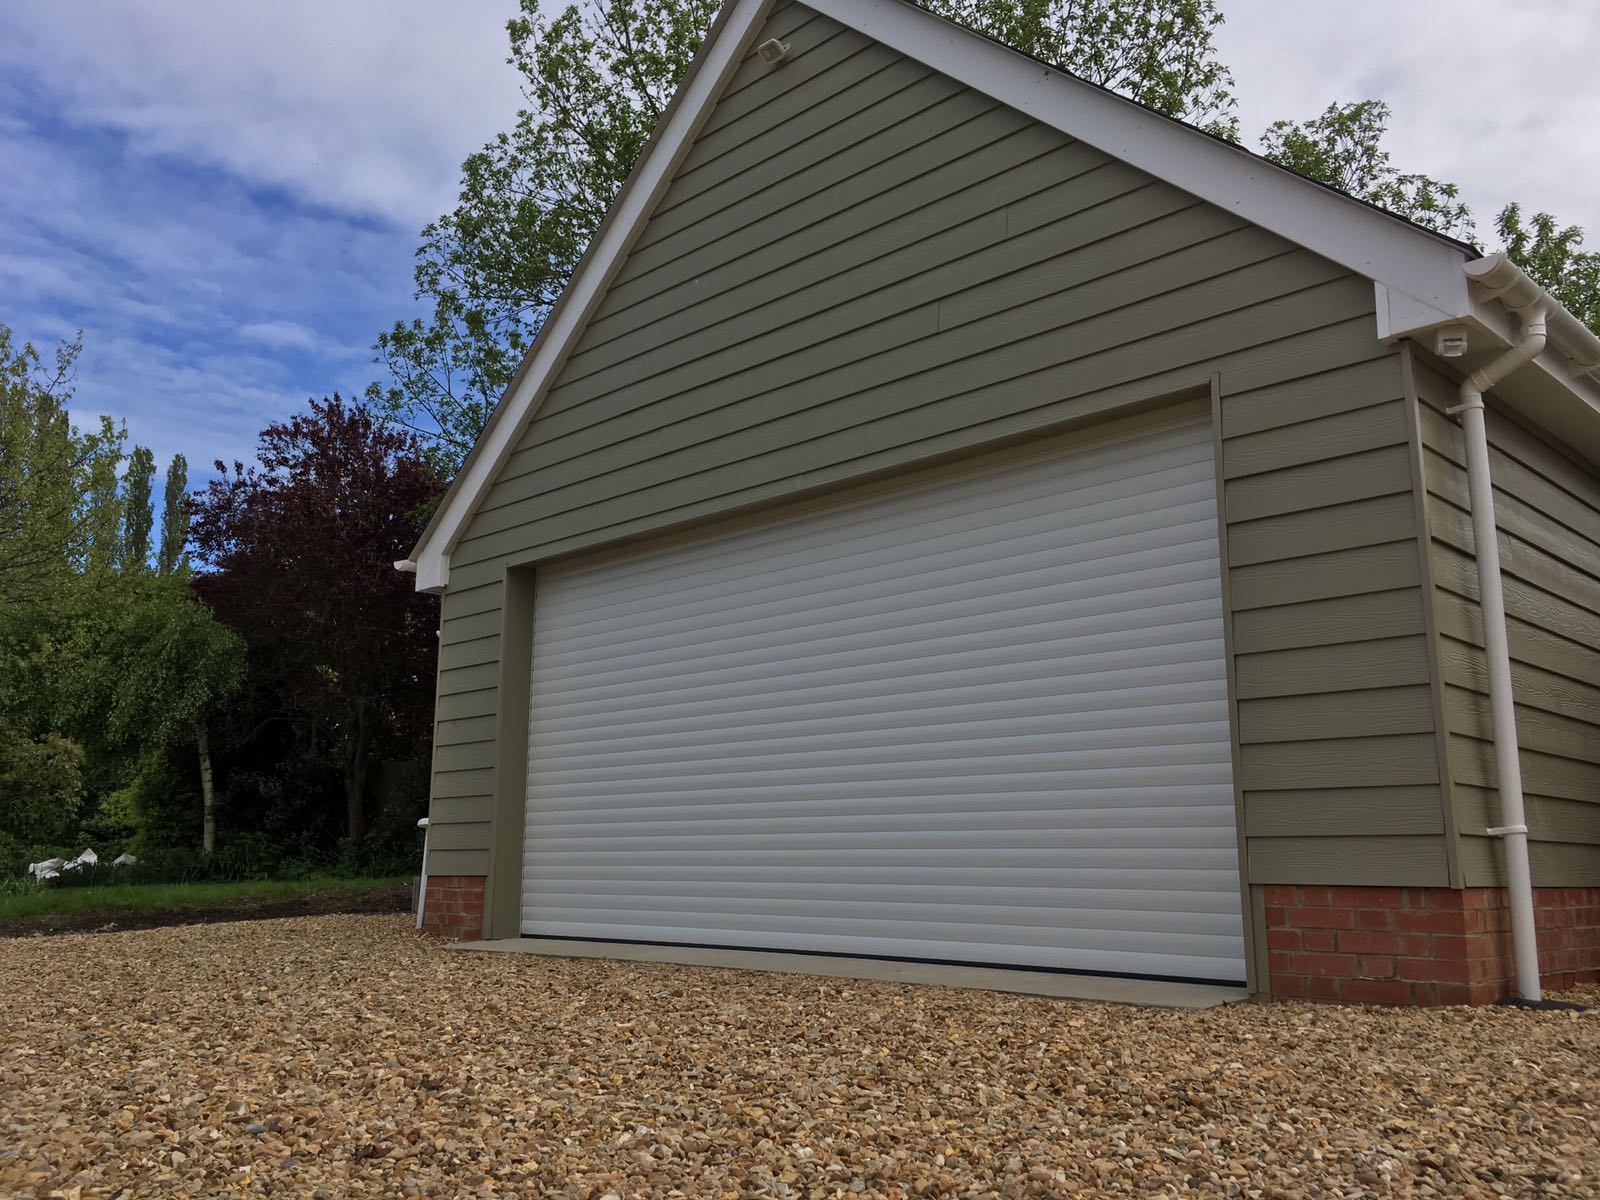 Executive large white single roller garage by Rollerdor Ltd doors